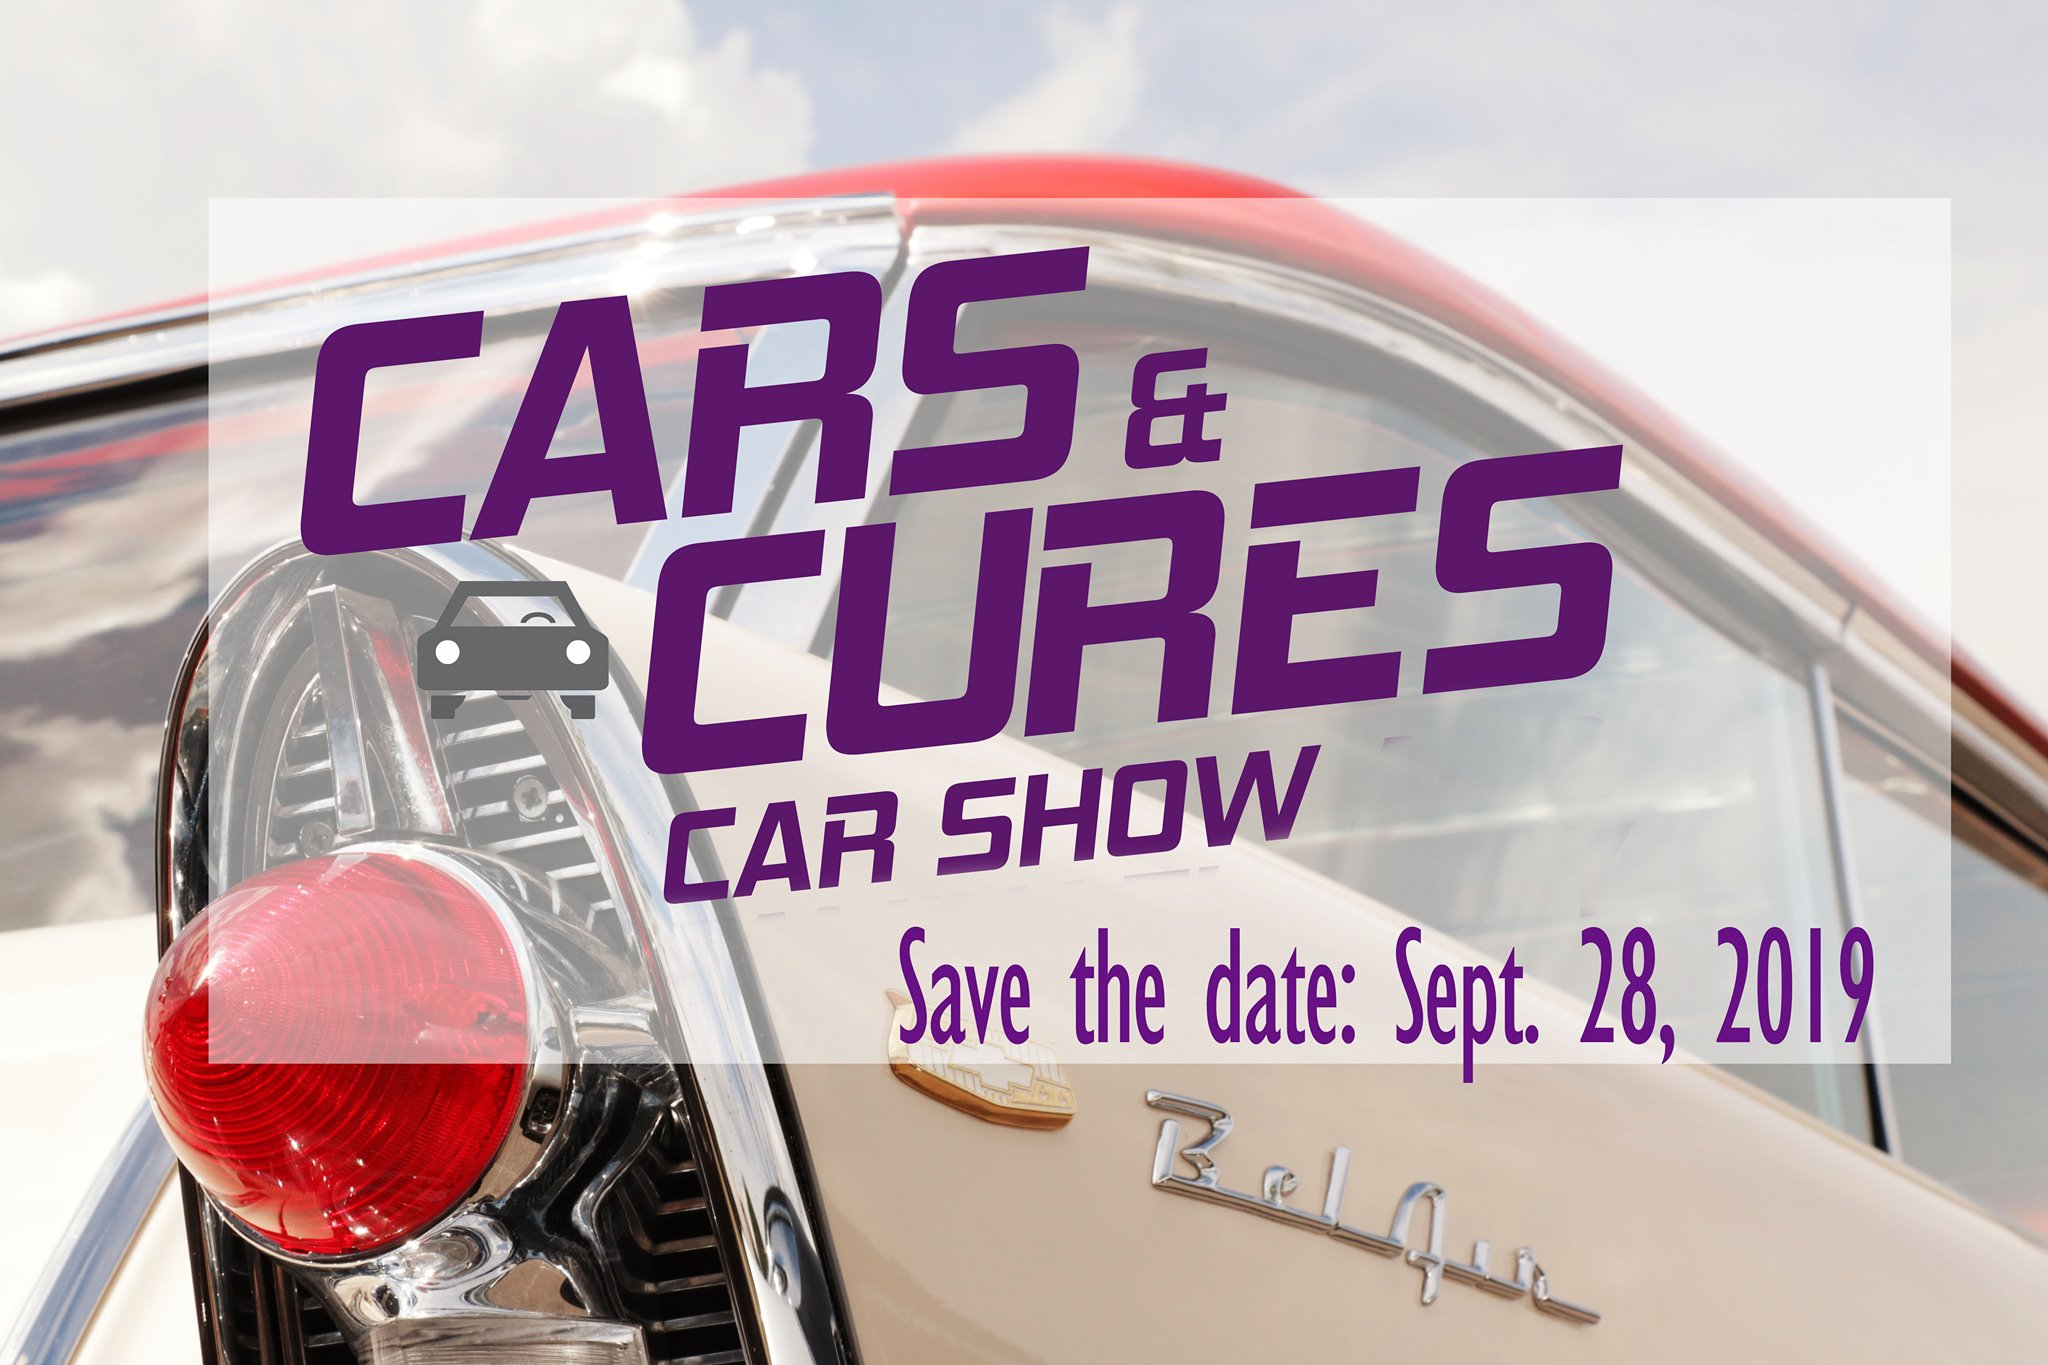 Cars and Cures Car Show and Family Fun Day returns with Project Alive